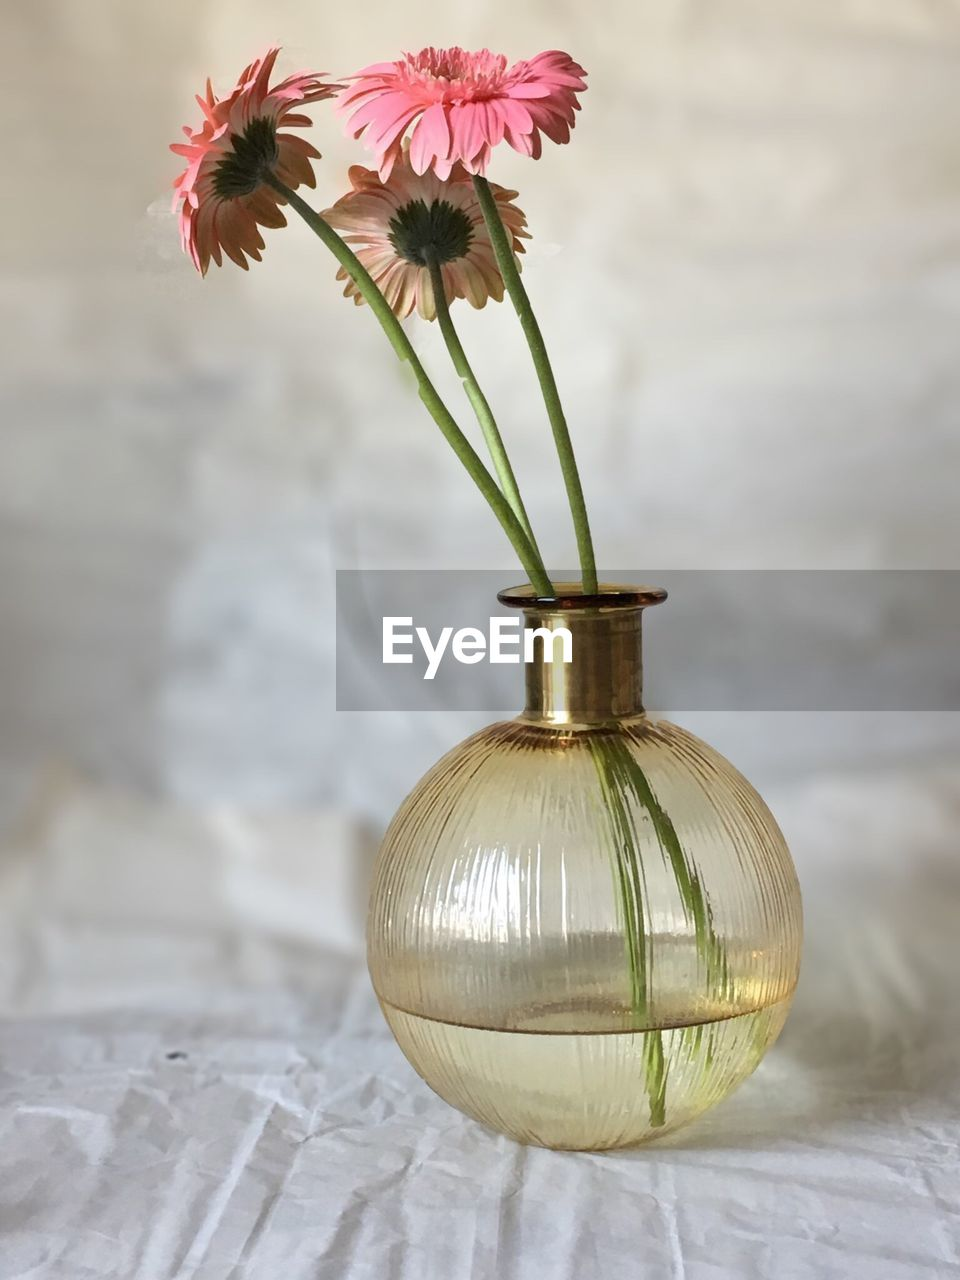 flower, vase, petal, flower head, fragility, beauty in nature, freshness, focus on foreground, no people, close-up, indoors, day, nature